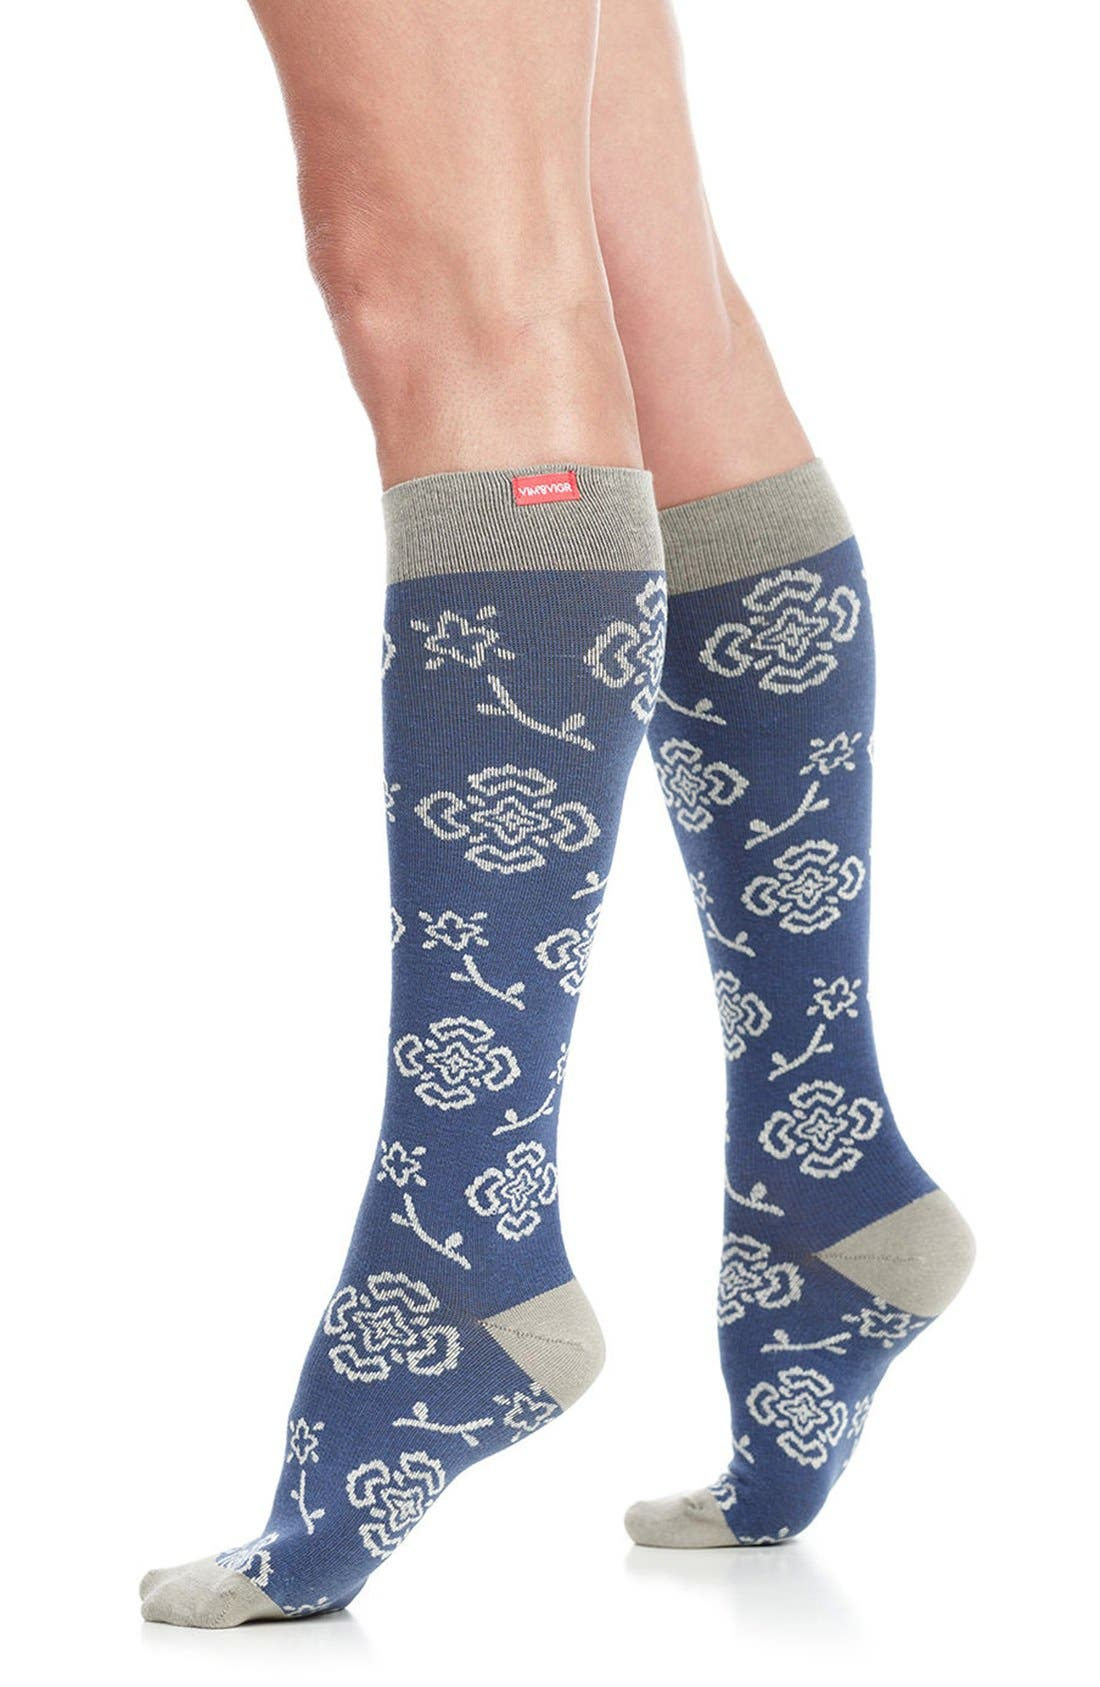 Queen's Floral Compression Trouser Socks,                         Main,                         color, Blue/ Charcoal